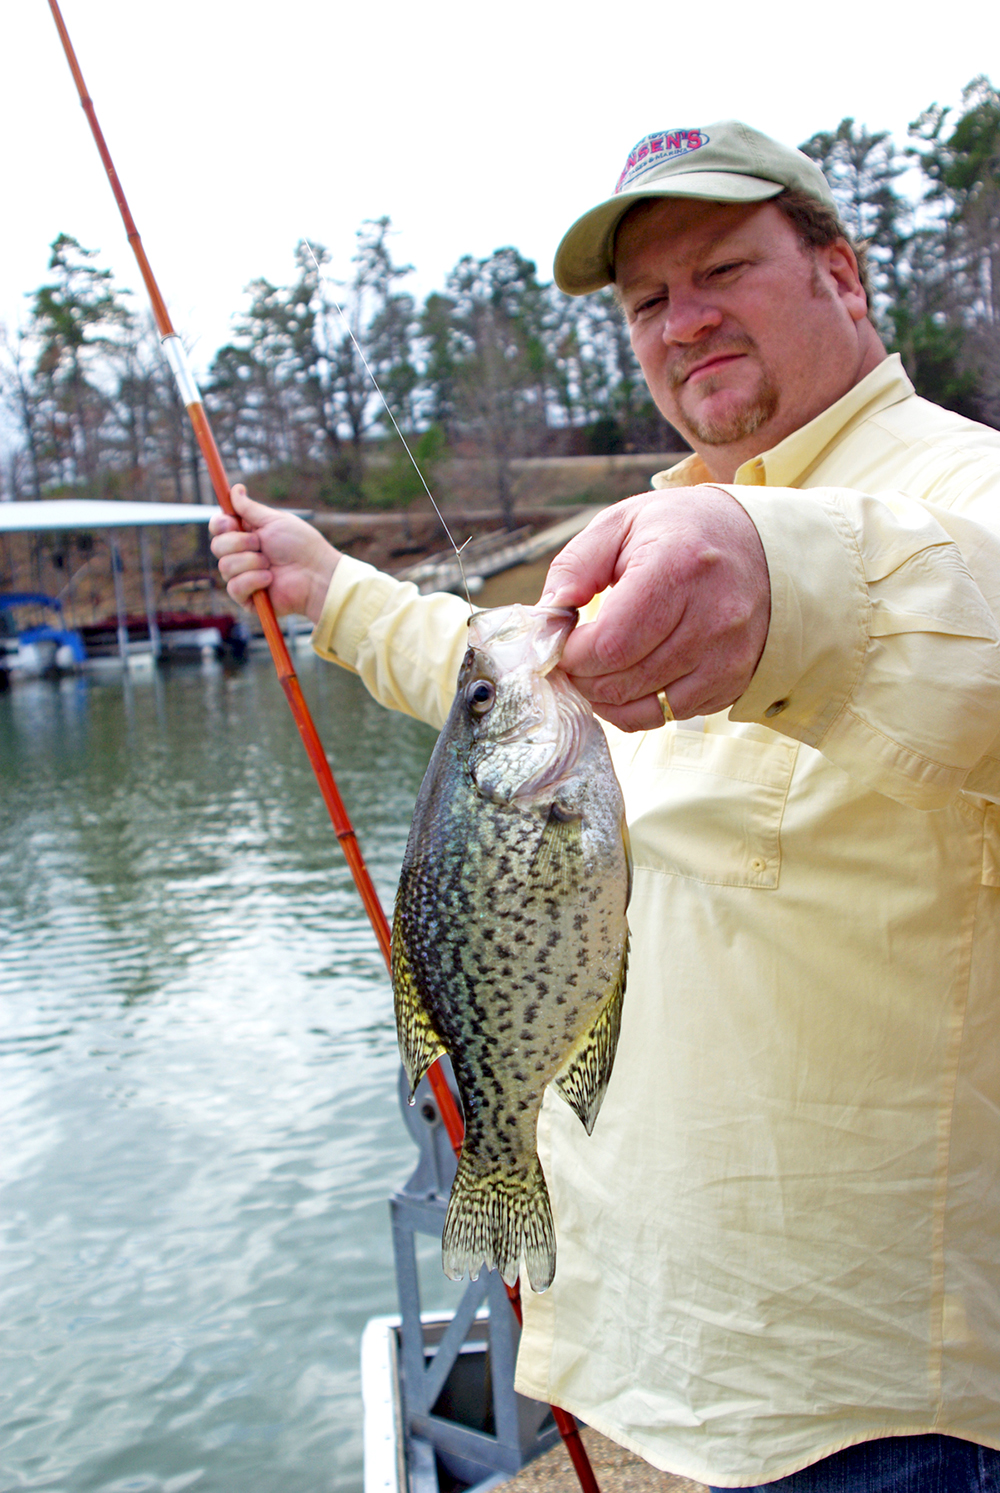 Natural state style crappie fishing for Crappie fishing pole